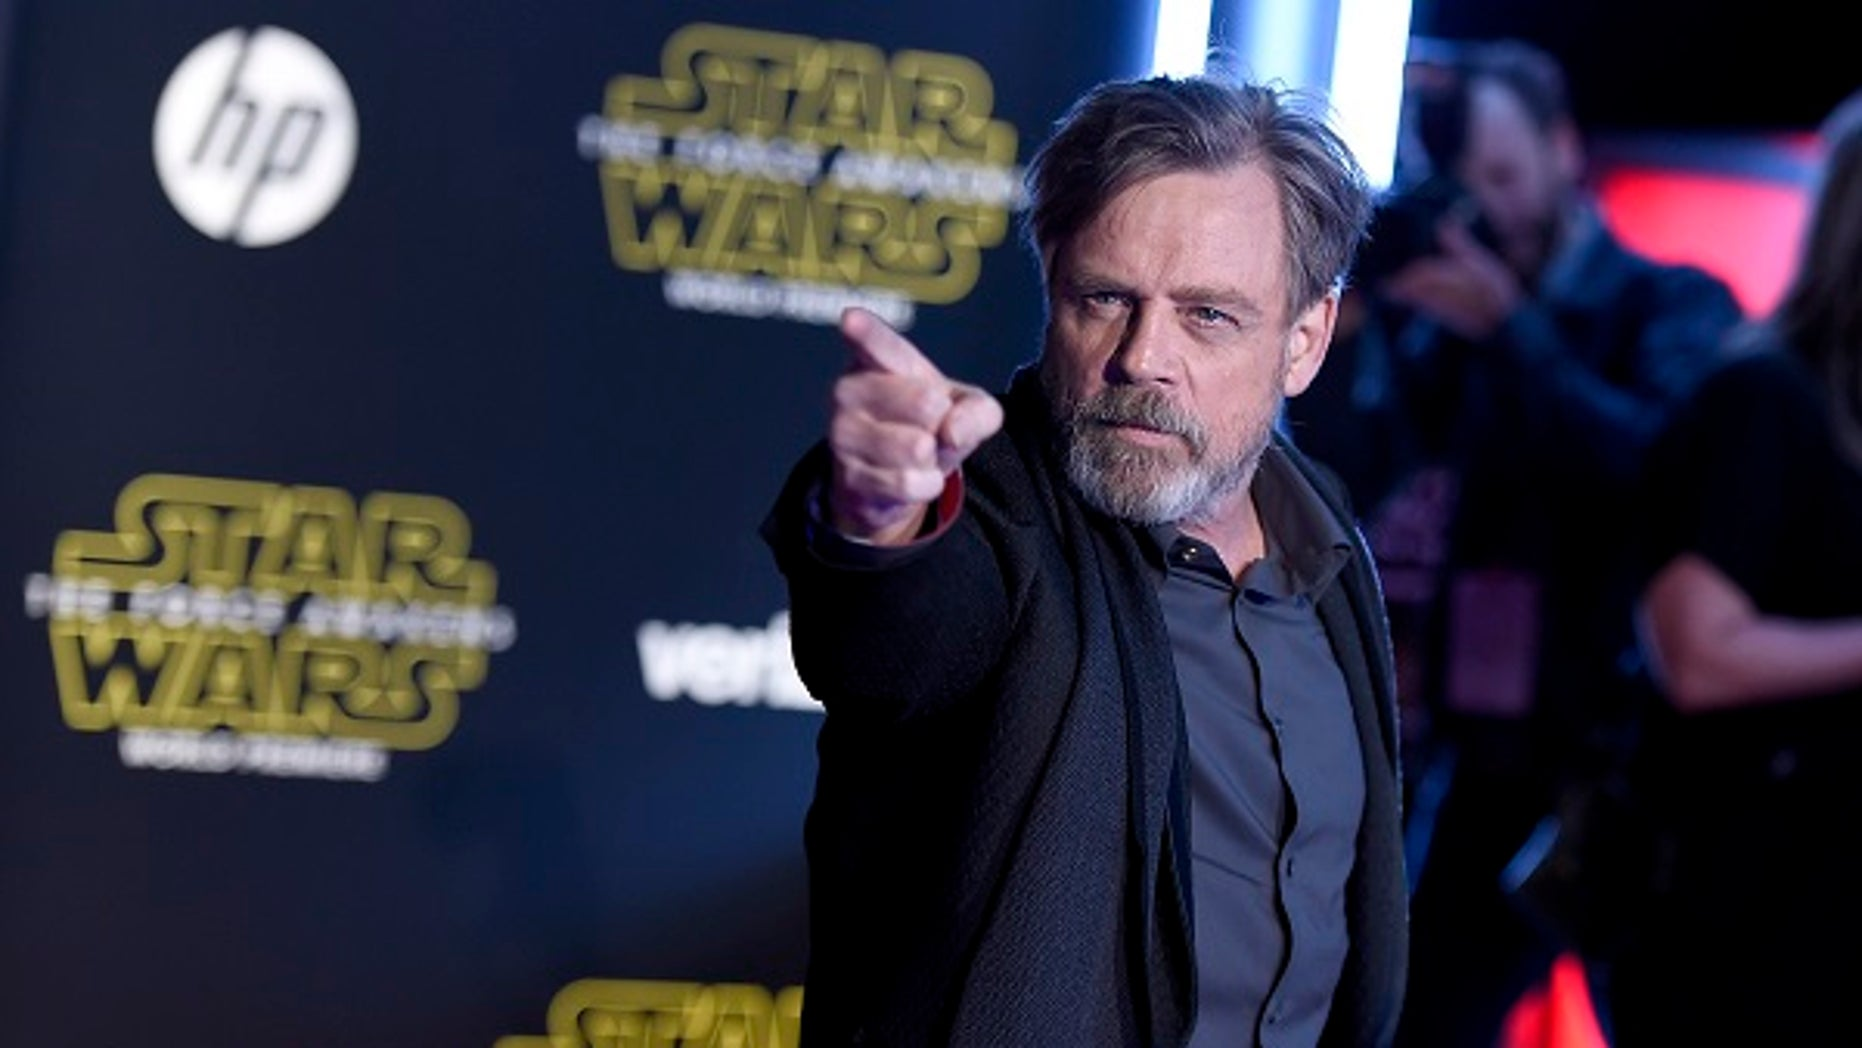 """""""Star Wars: The Force Awakens"""" director said Mark Hamill """"was not particularly happy"""" with how small his role was in the 2015 film."""